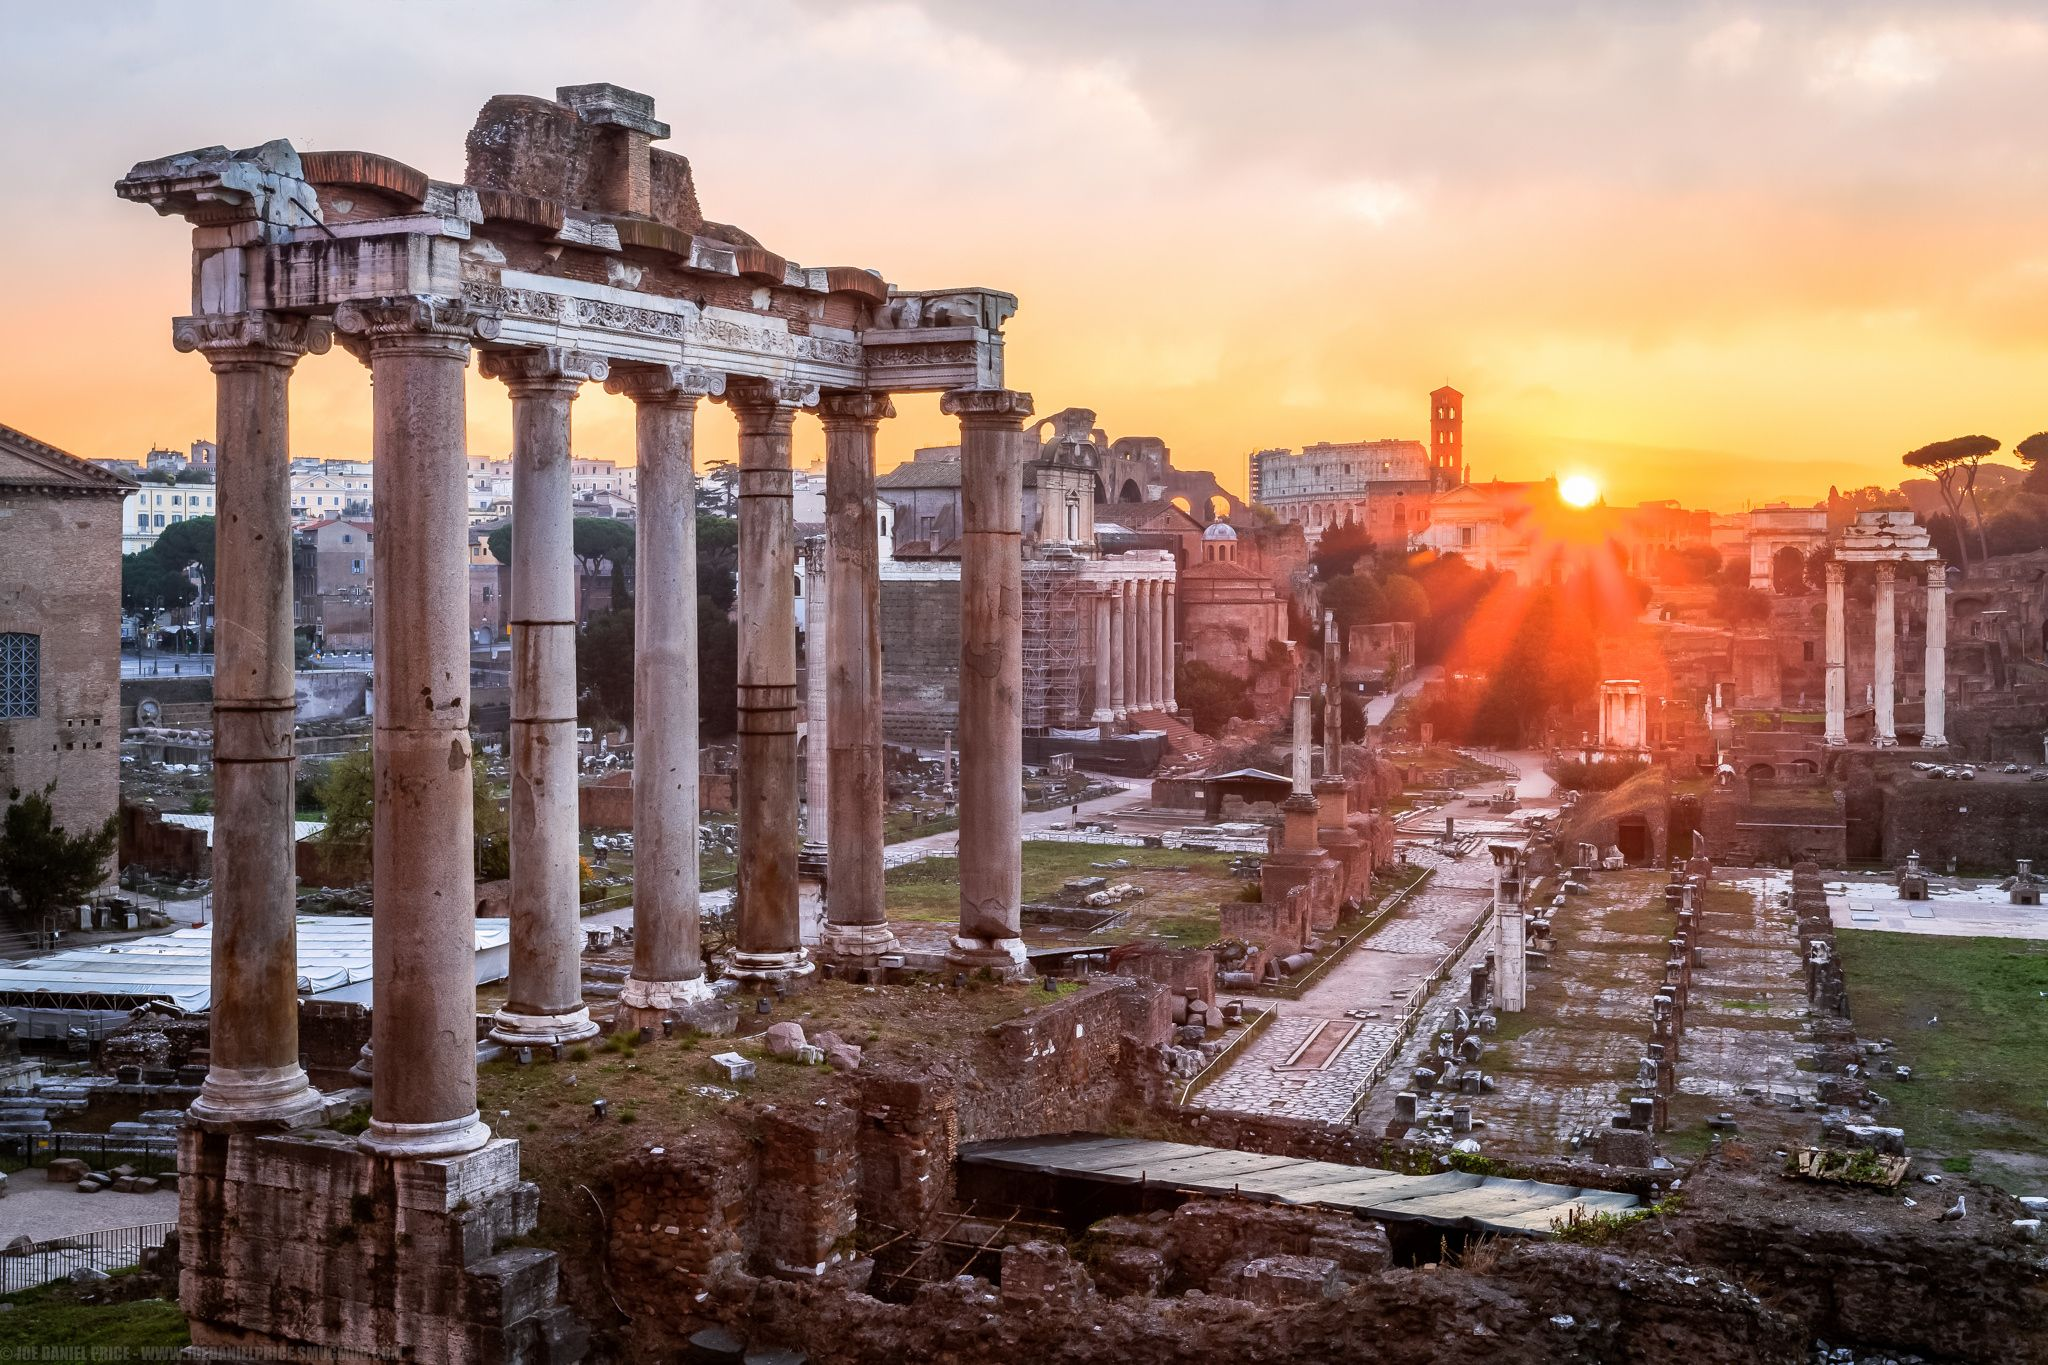 Photograph Sunrise, Roman Forum, Rome, Italy by Joe Daniel